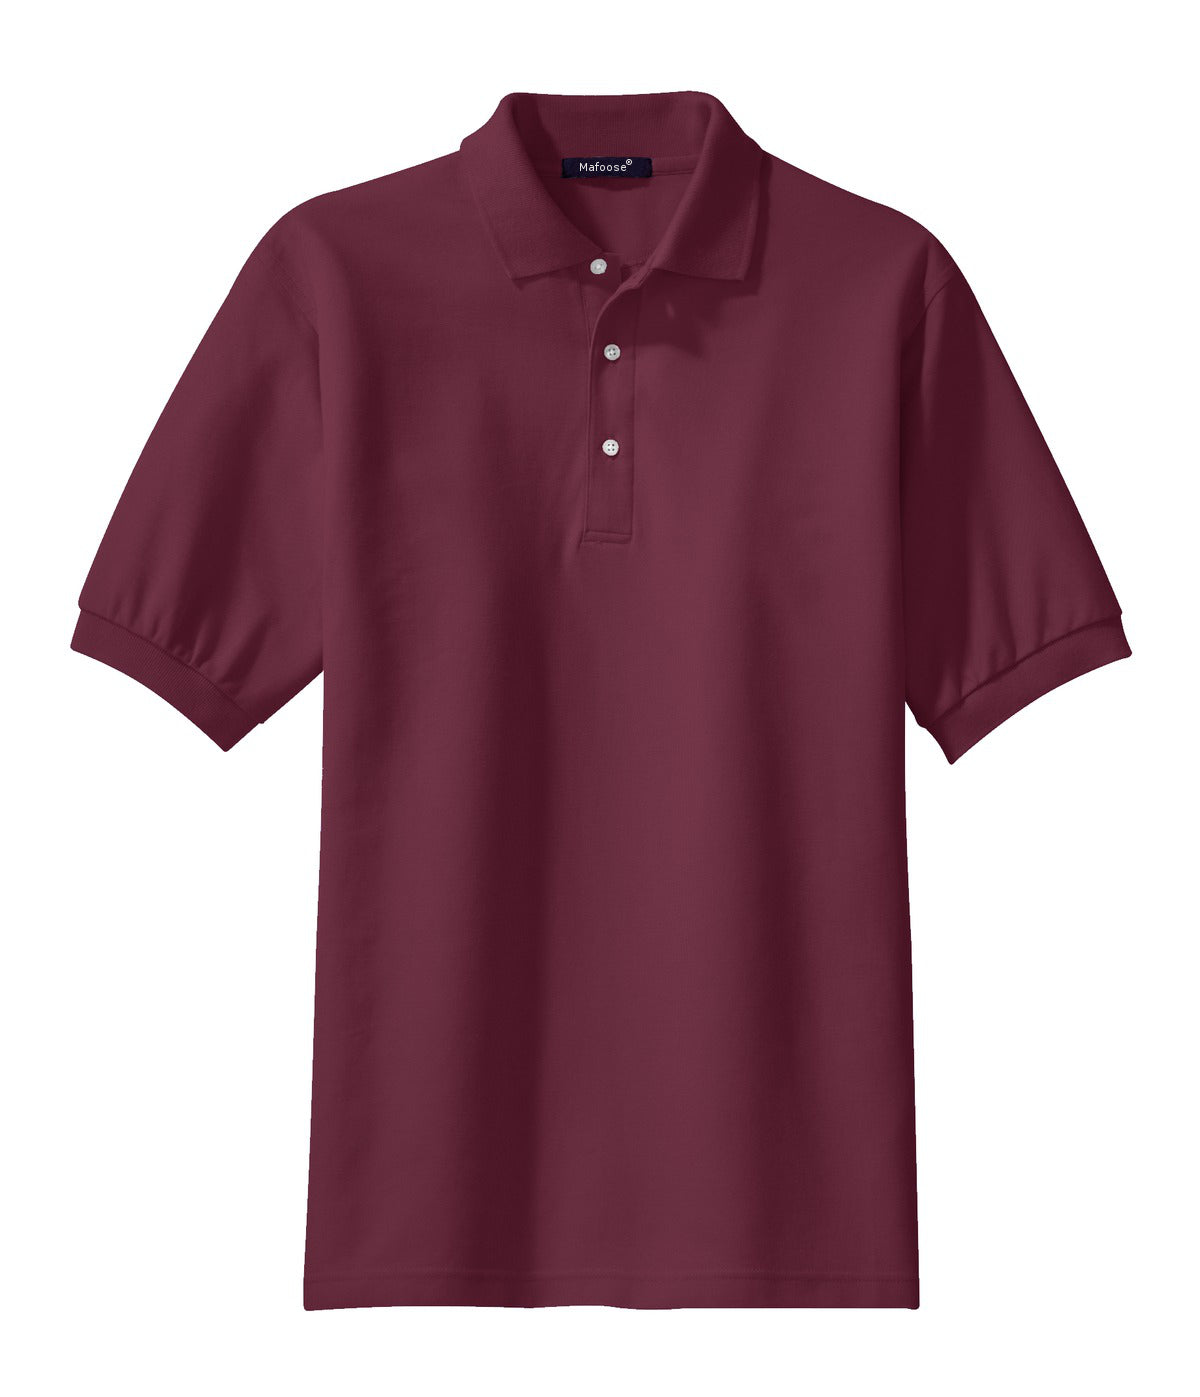 Mafoose Men's 100% Pima Cotton Polo Shirt Burgundy-Front